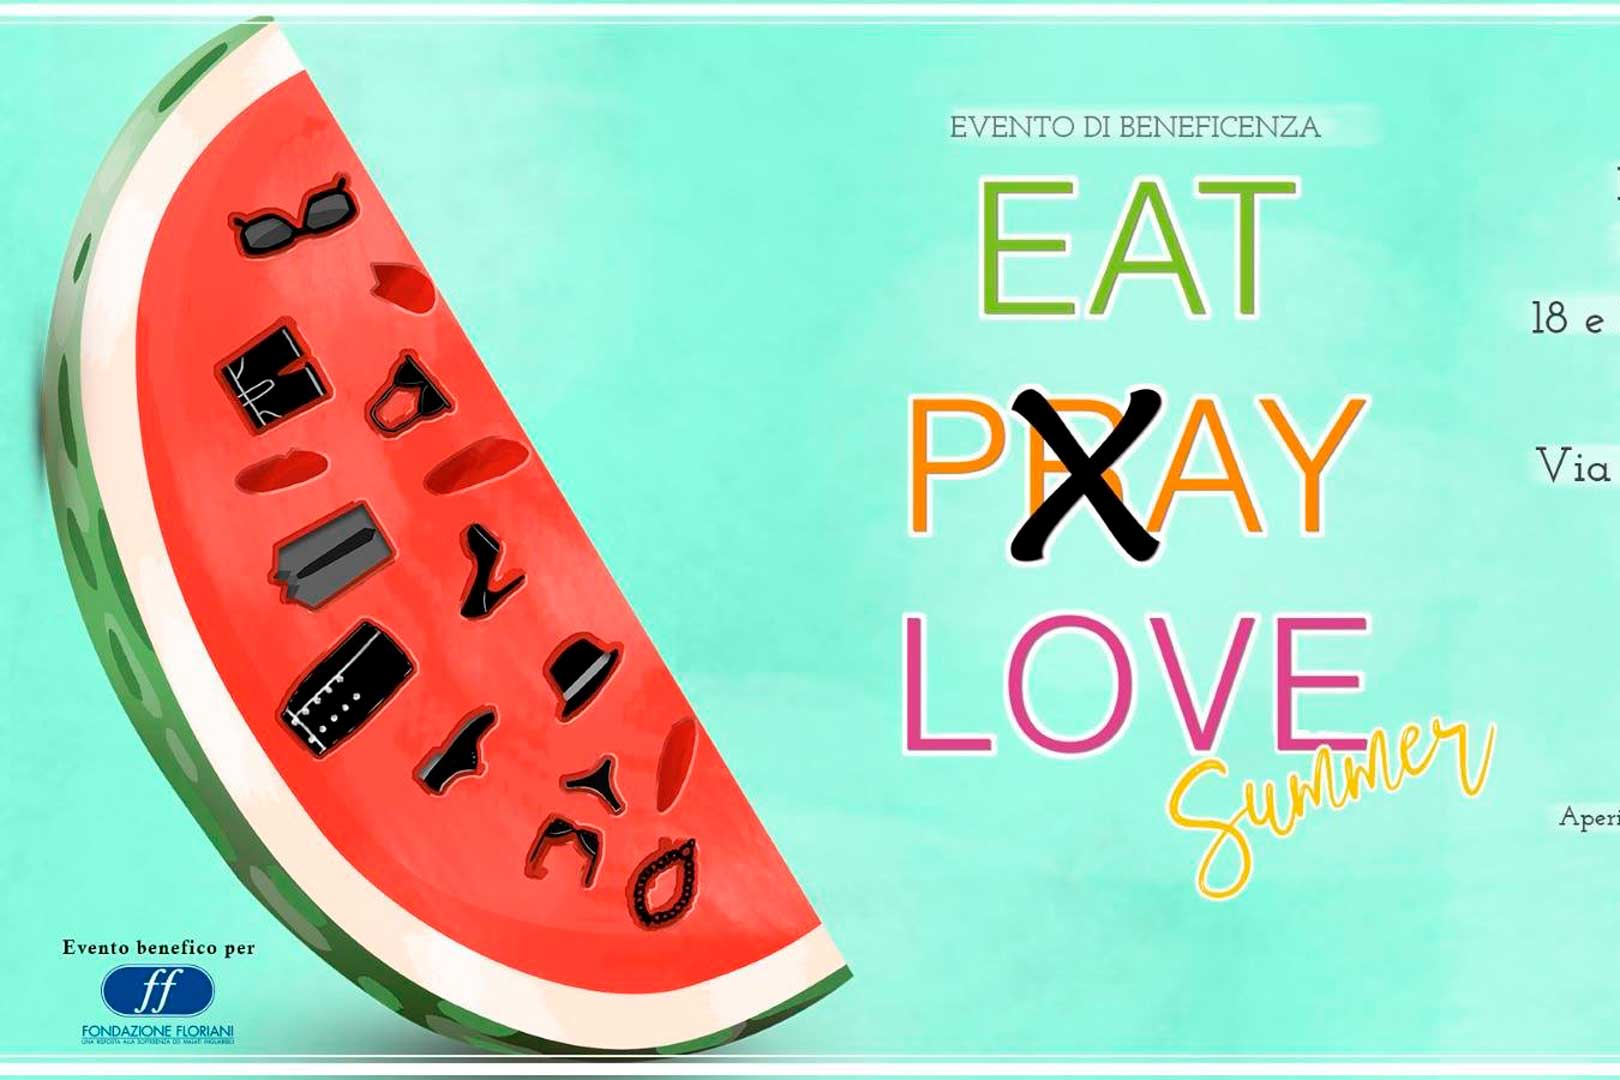 EAT PAY LOVE 2018